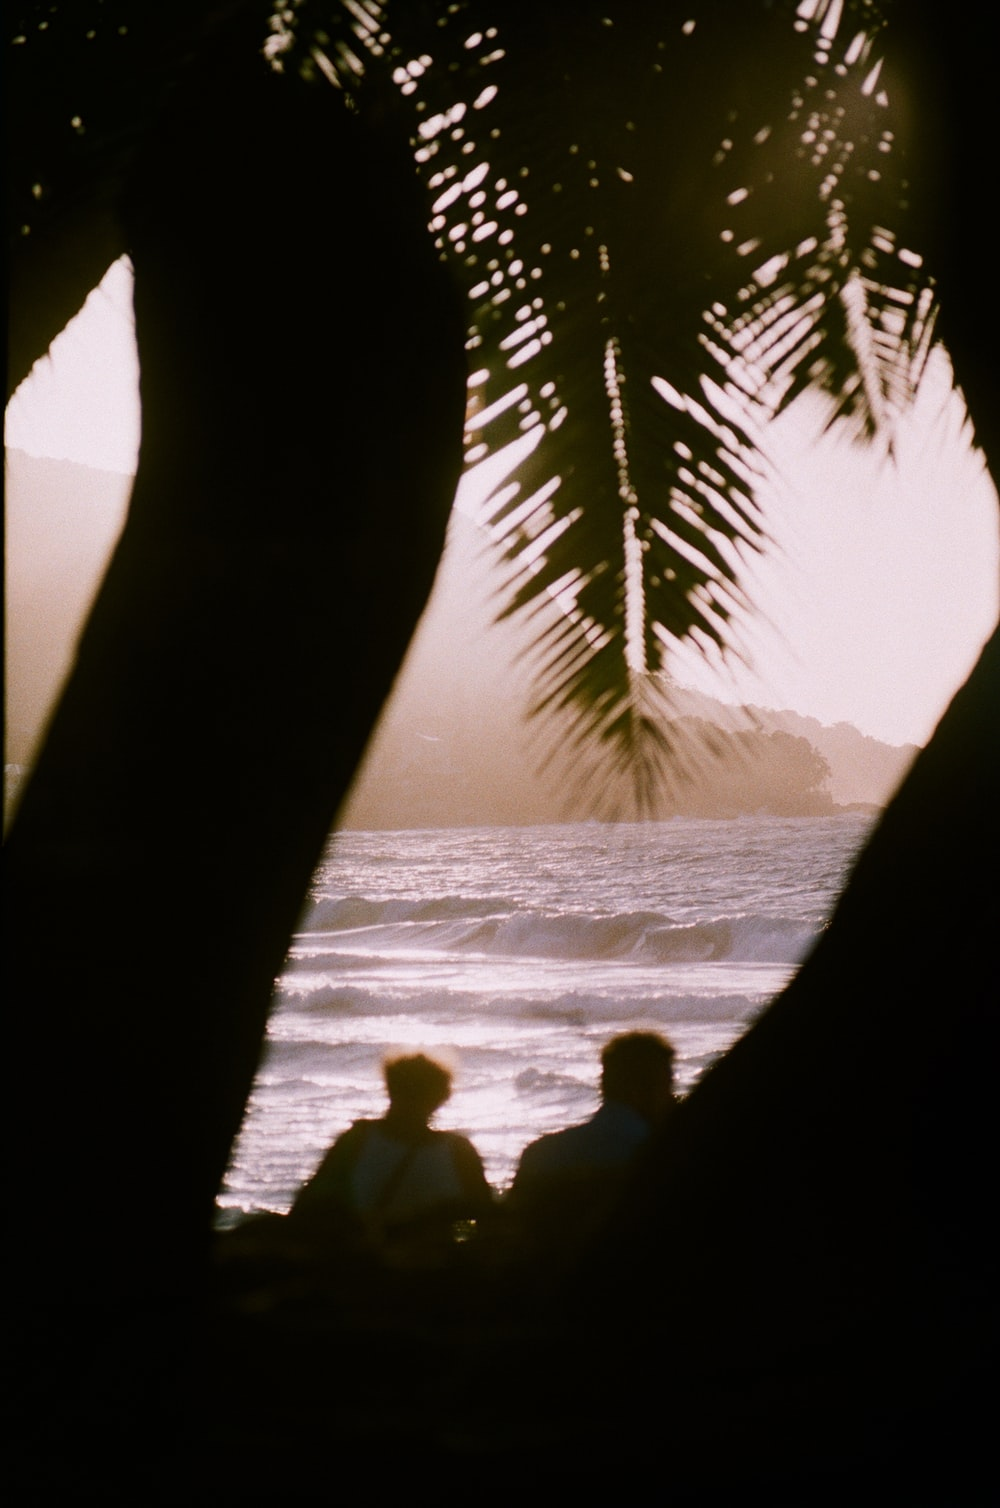 silhouette of 2 person sitting on rock near body of water during daytime